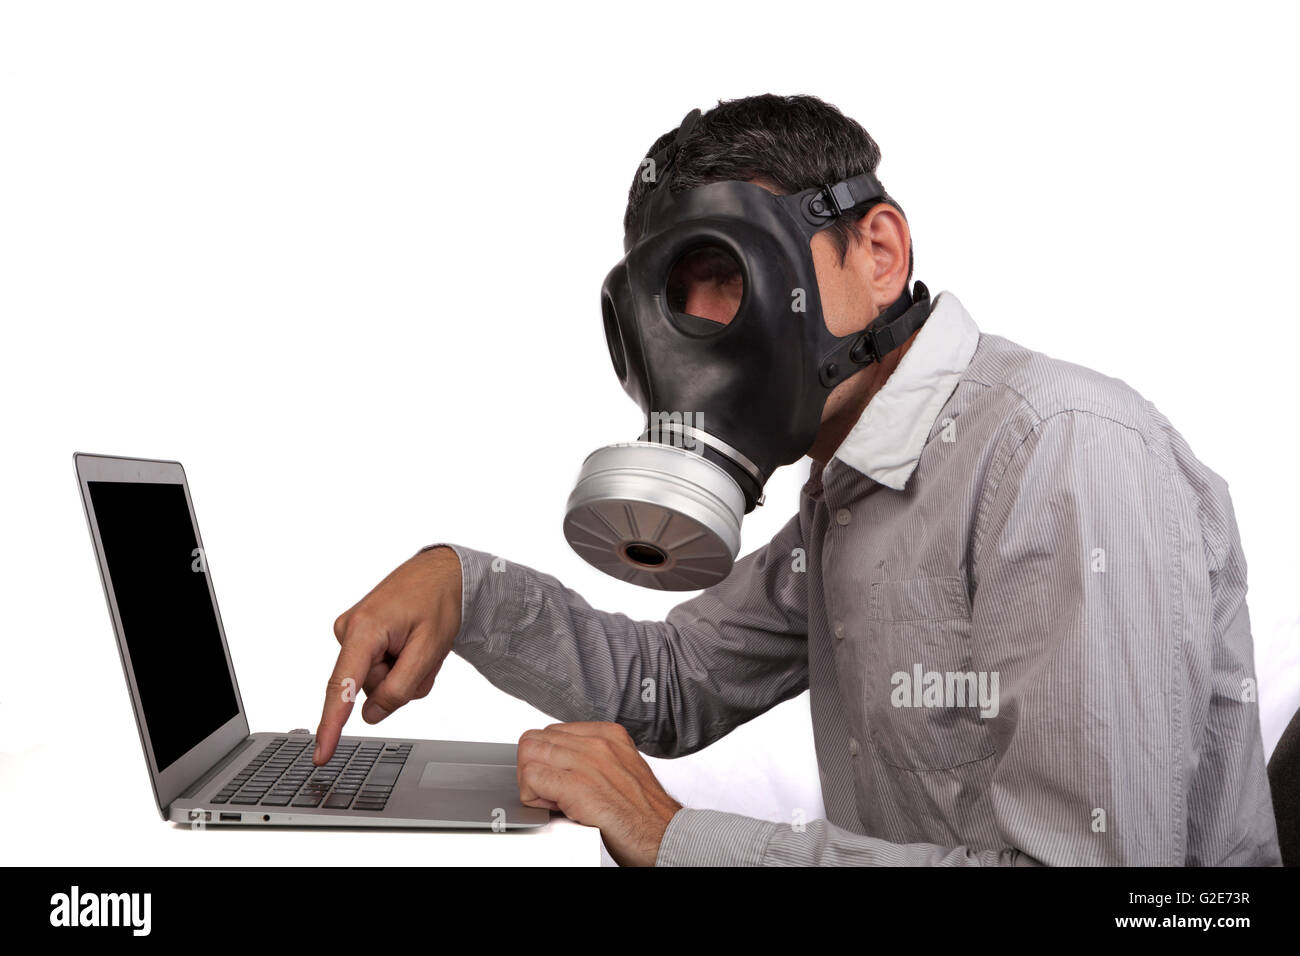 Man with gas mask working with silver laptop isolated on white background - Stock Image